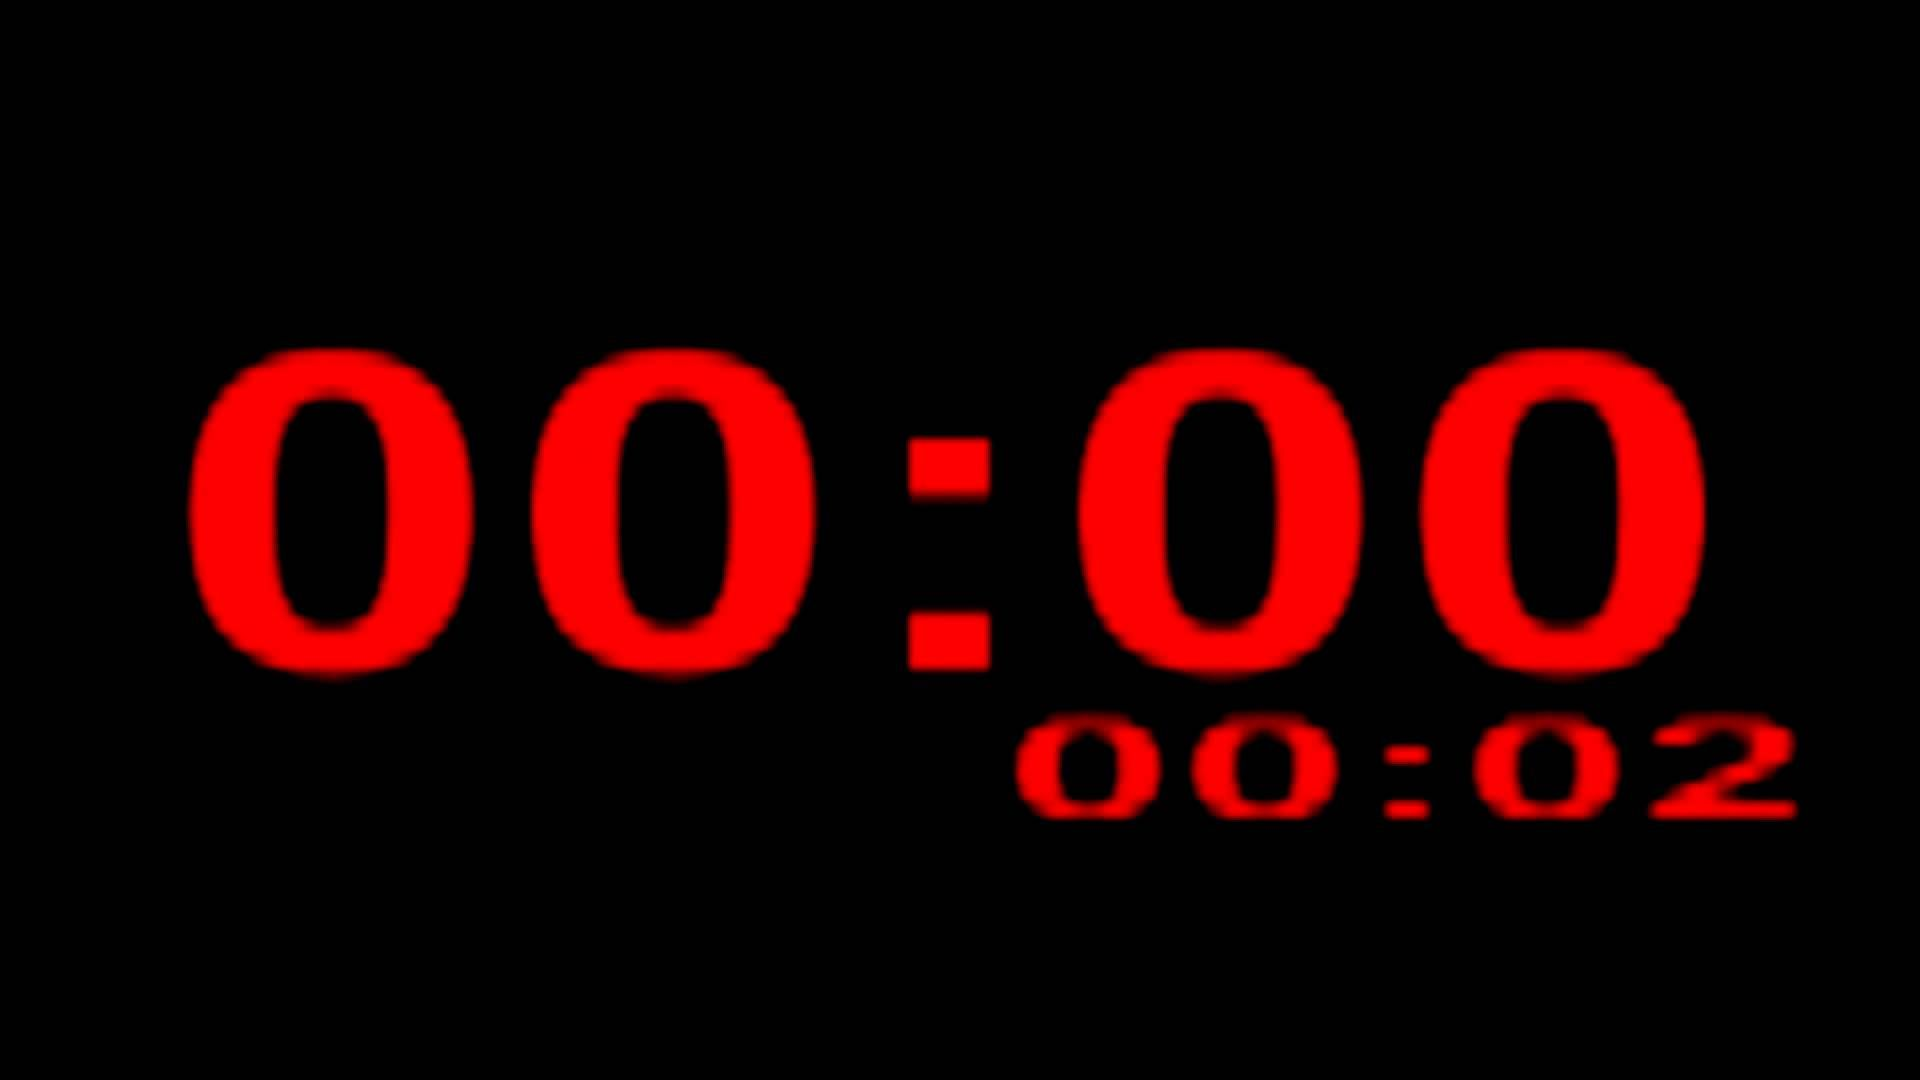 IMPROVED BOXING TIMER- BIGGER DIGITS 1.5 HOURS! Three minute boxing time...